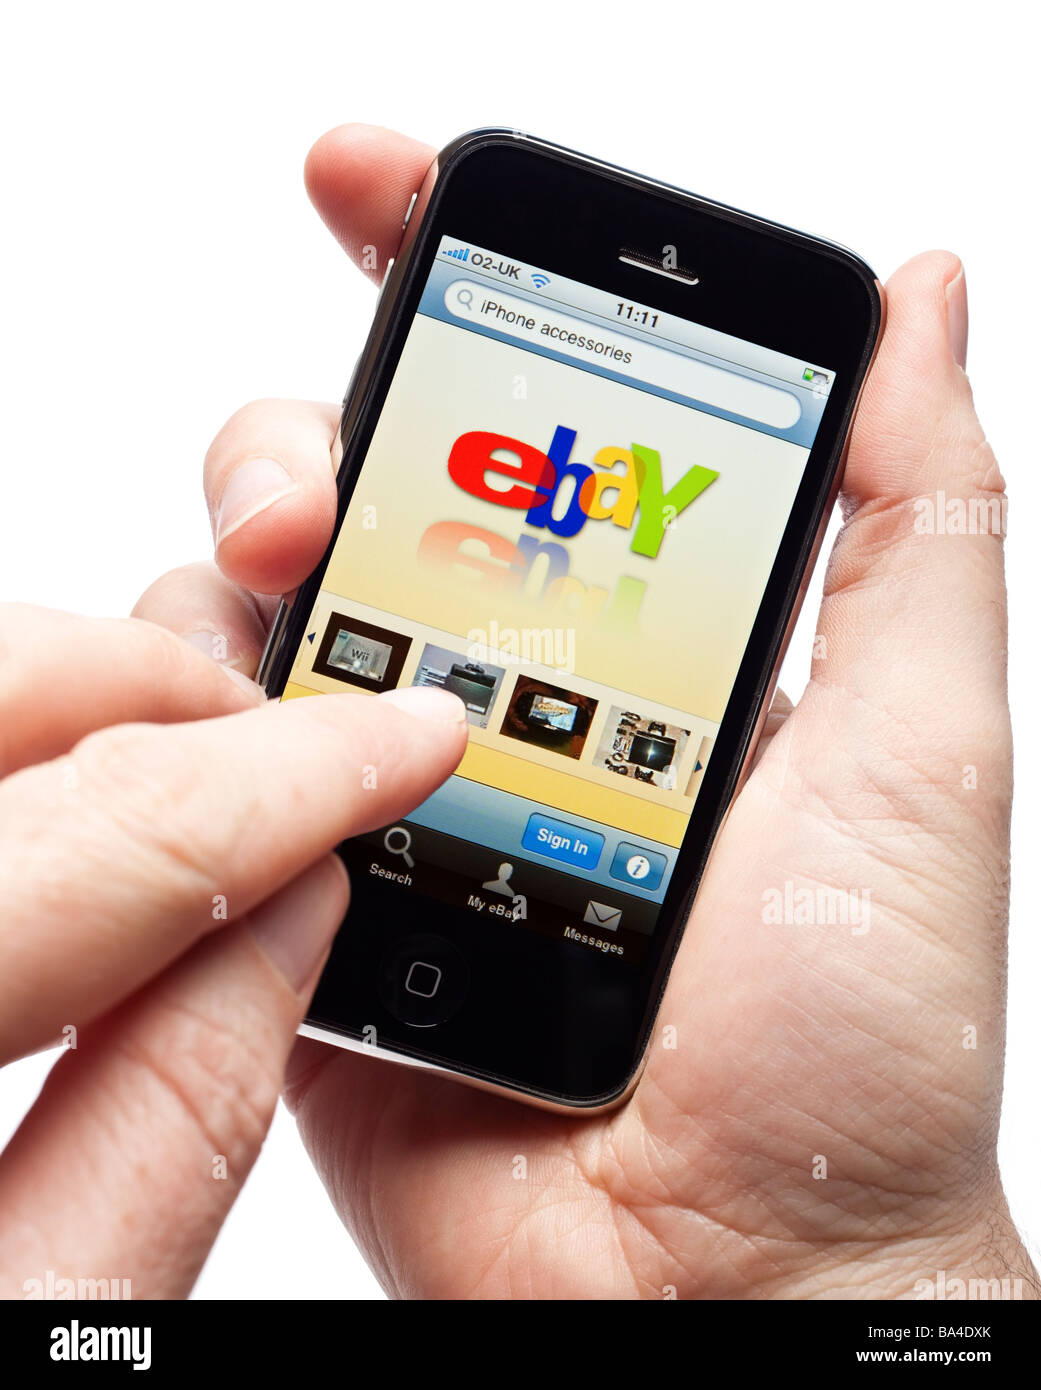 Male hands using iPhone and using the Ebay app on a smartphone smart phone mobile phone - Stock Image